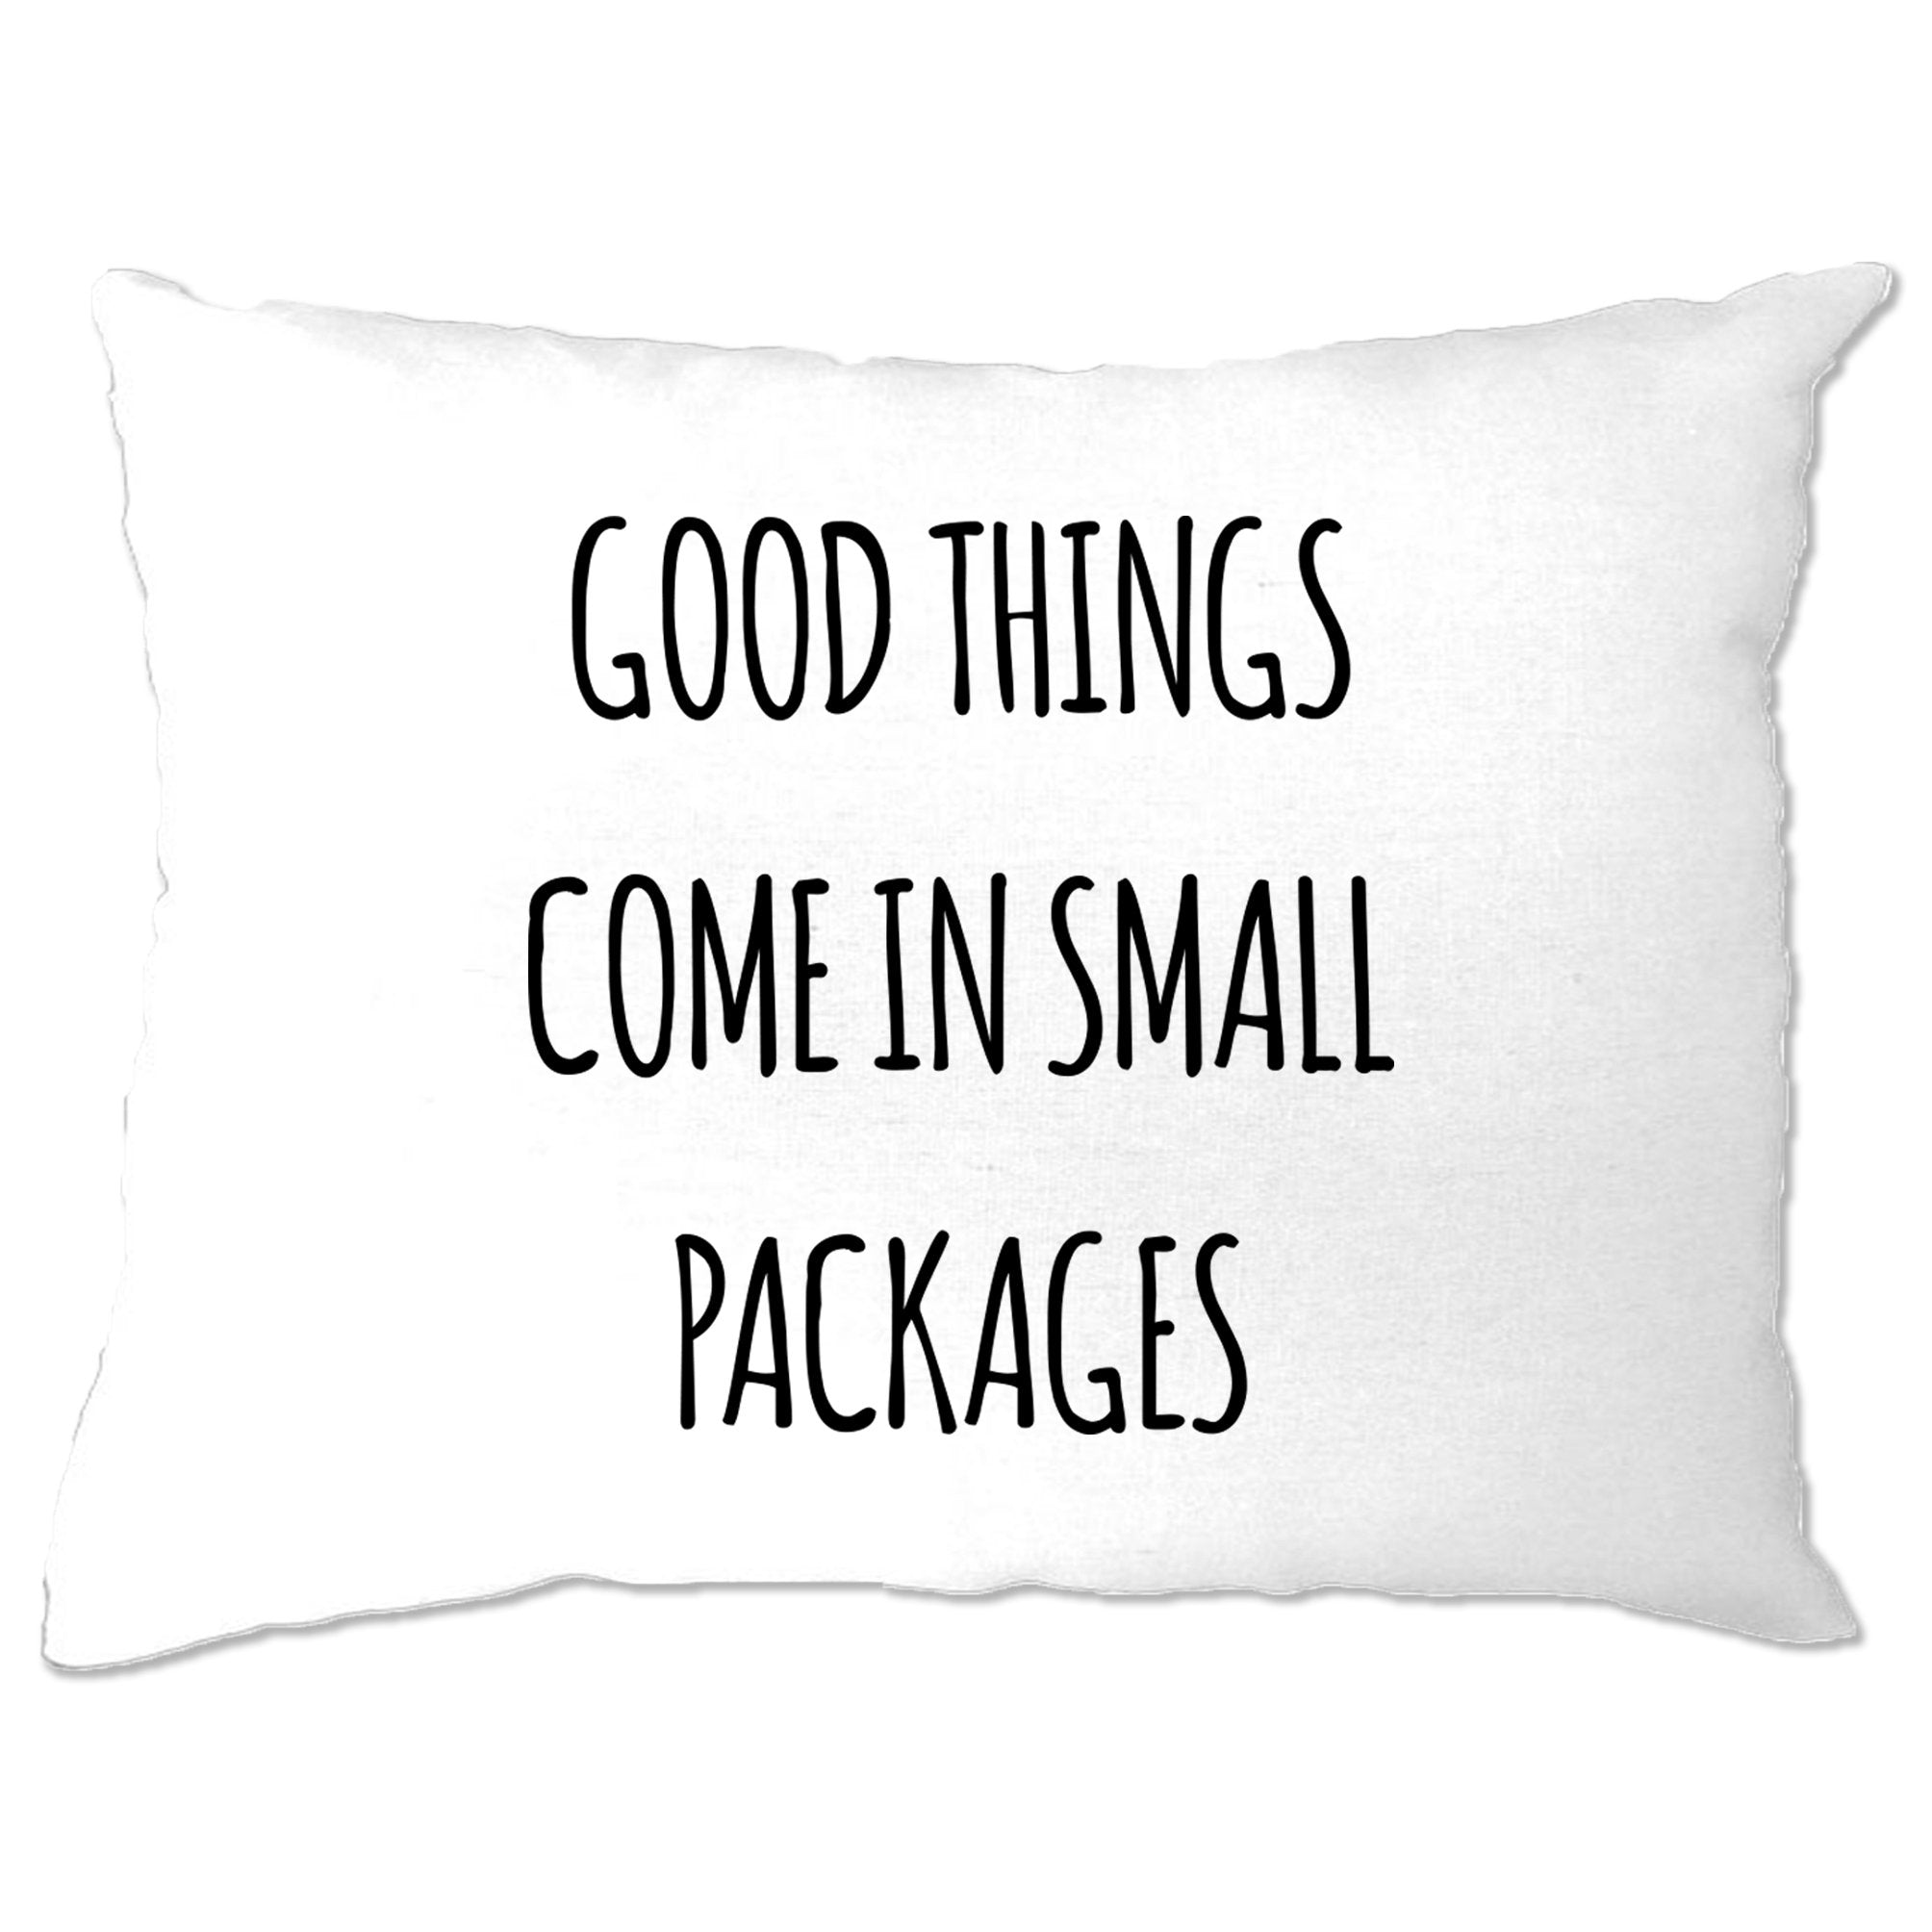 Height Joke Pillow Case Good Things Come In Small Packages